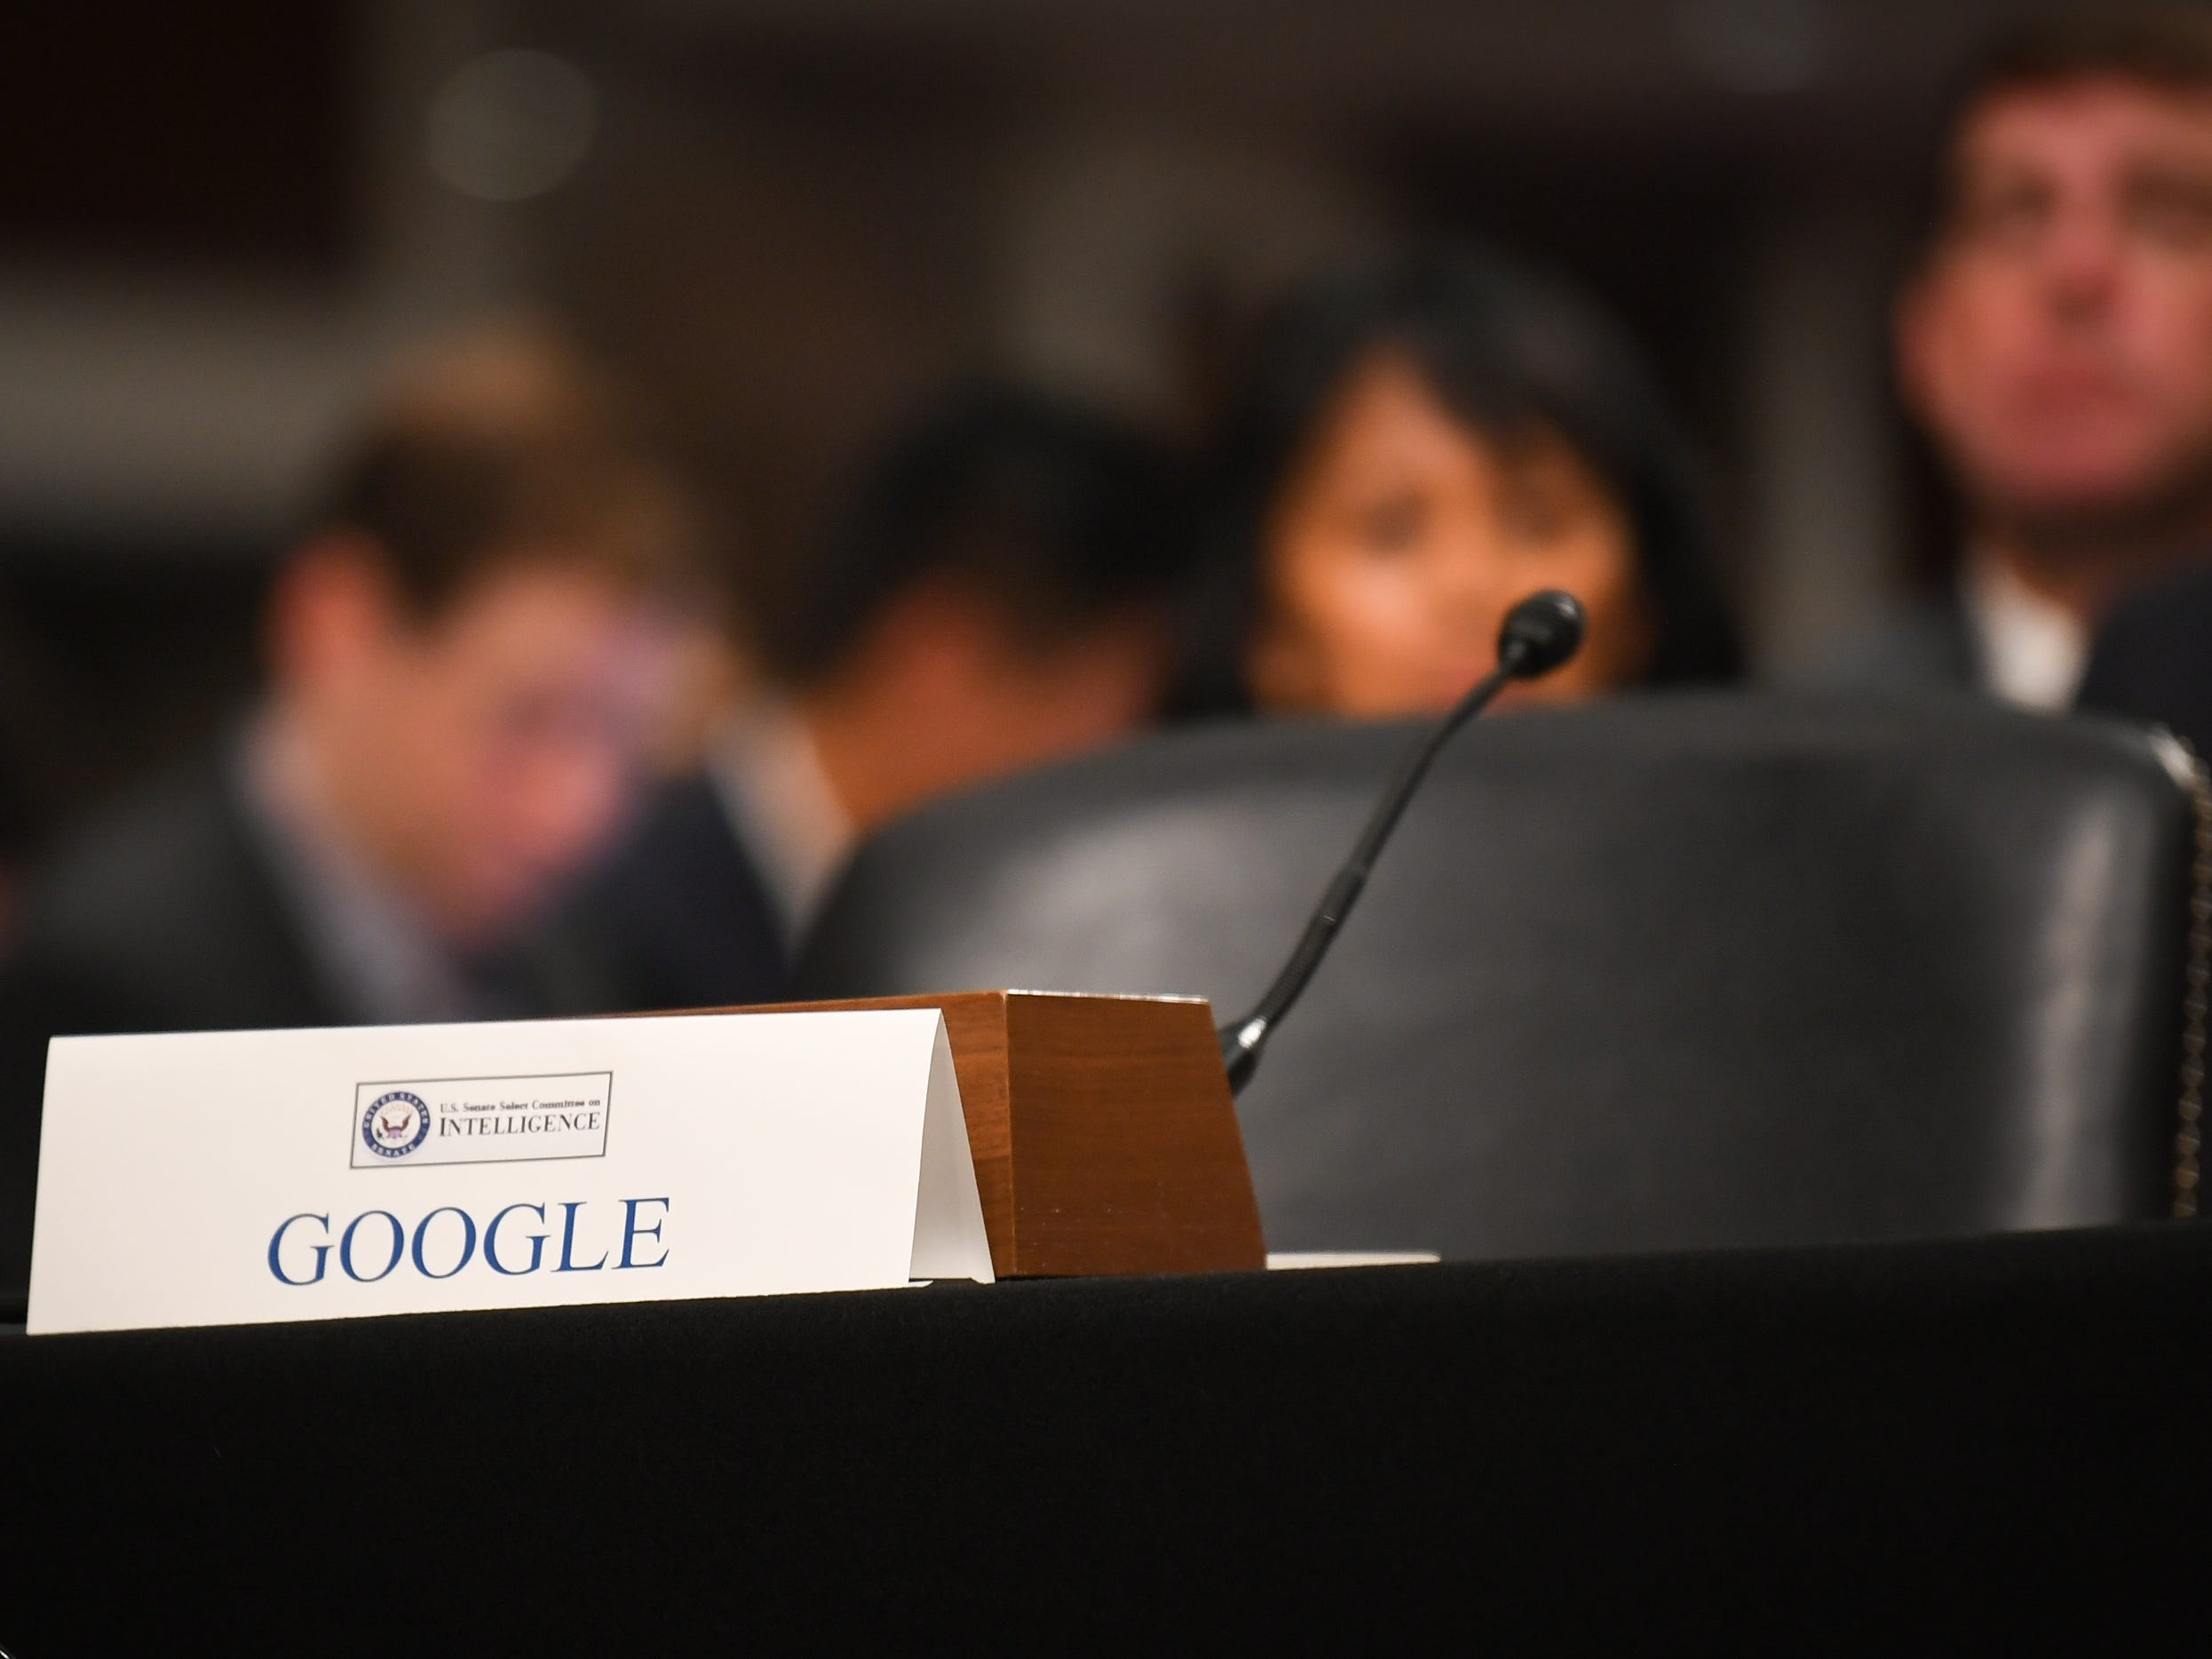 9/5/18 9:33:11 AM -- Washington, DC, U.S.A  -- An empty chair and placard for Google in place beside Sheryl Sandberg, chief operating officer of Facebook Inc., and Jack Dorsey, chief executive officer of Twitter Inc., before testimony before the Senate Select Committee on Intelligence during a hearing on Foreign Influence Operations' Use of Social Media Platforms on Sept. 5, 2018 in Washington.  --    Photo by Jack Gruber, USA TODAY Staff ORG XMIT:  JG 137441 Social Media Hea 9/5/ (Via OlyDrop)